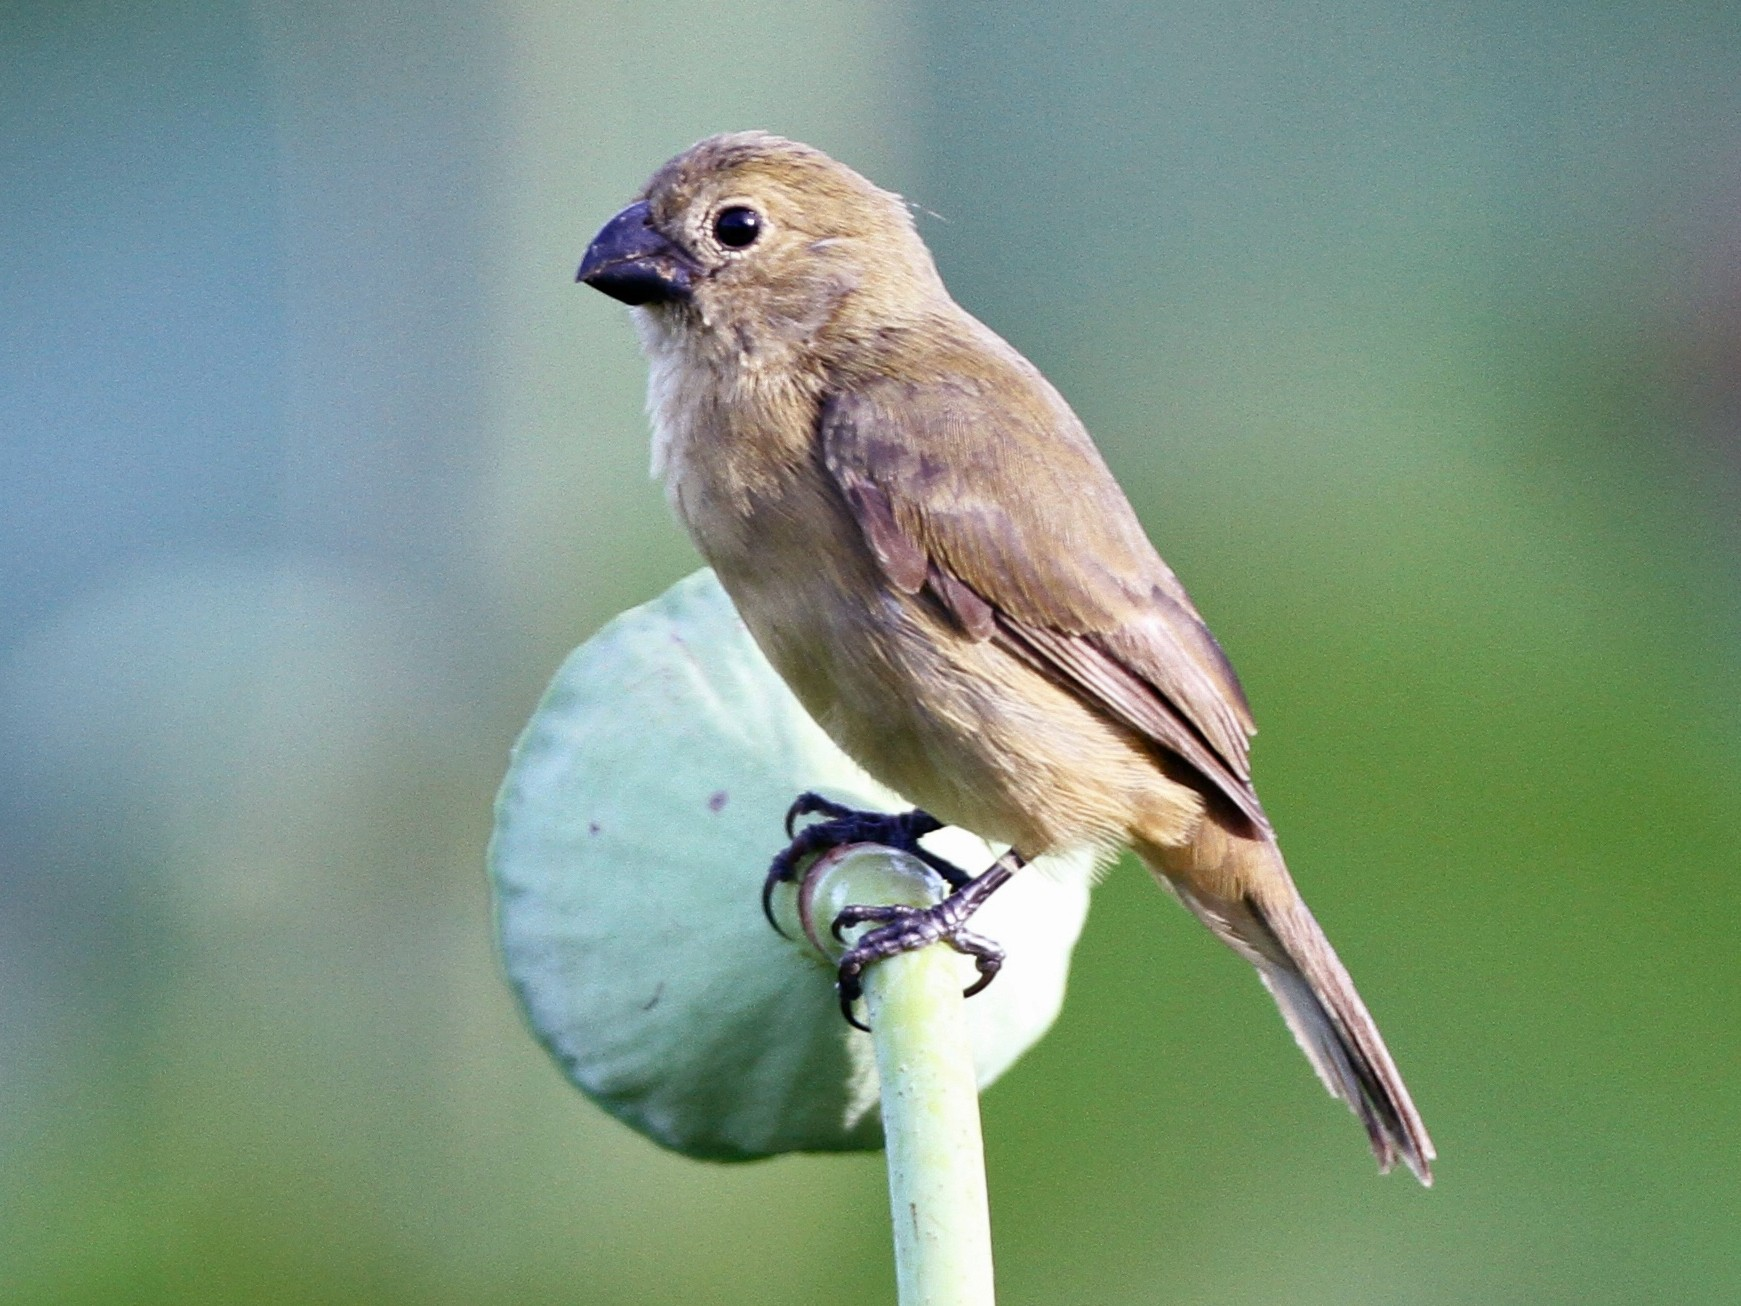 Wing-barred Seedeater - Alex Wiebe